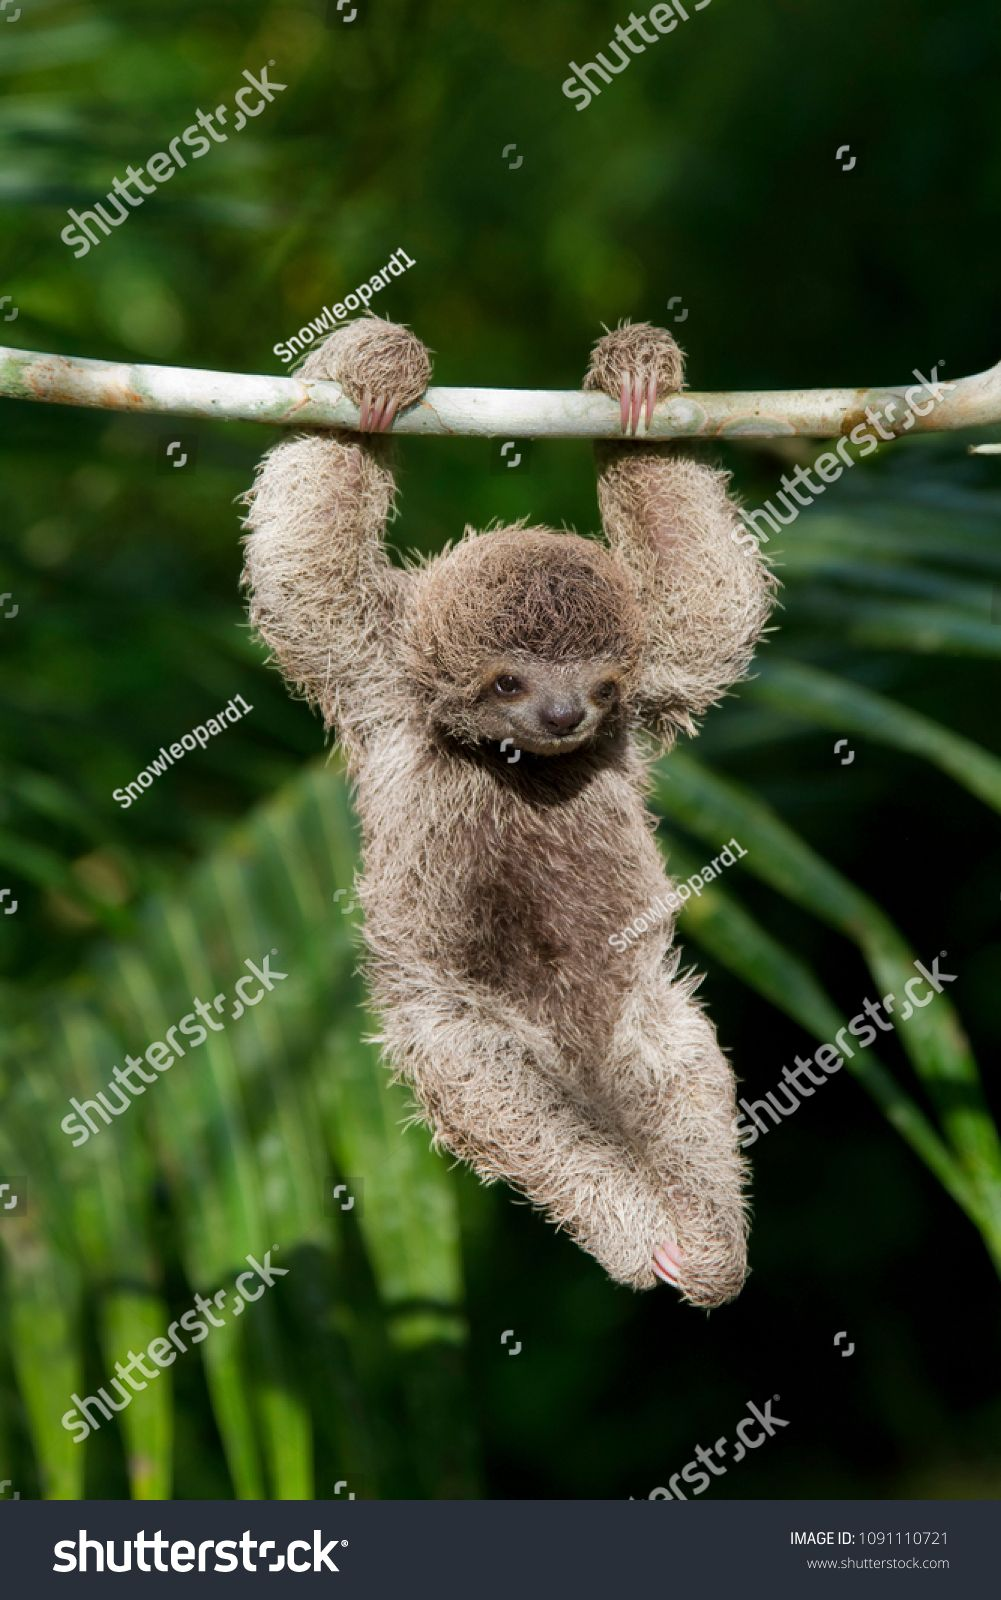 Cute Baby Sloth Hanging From Tree Branchsloth Baby Cute Branch Cute Baby Sloths Baby Sloth Cute Babies